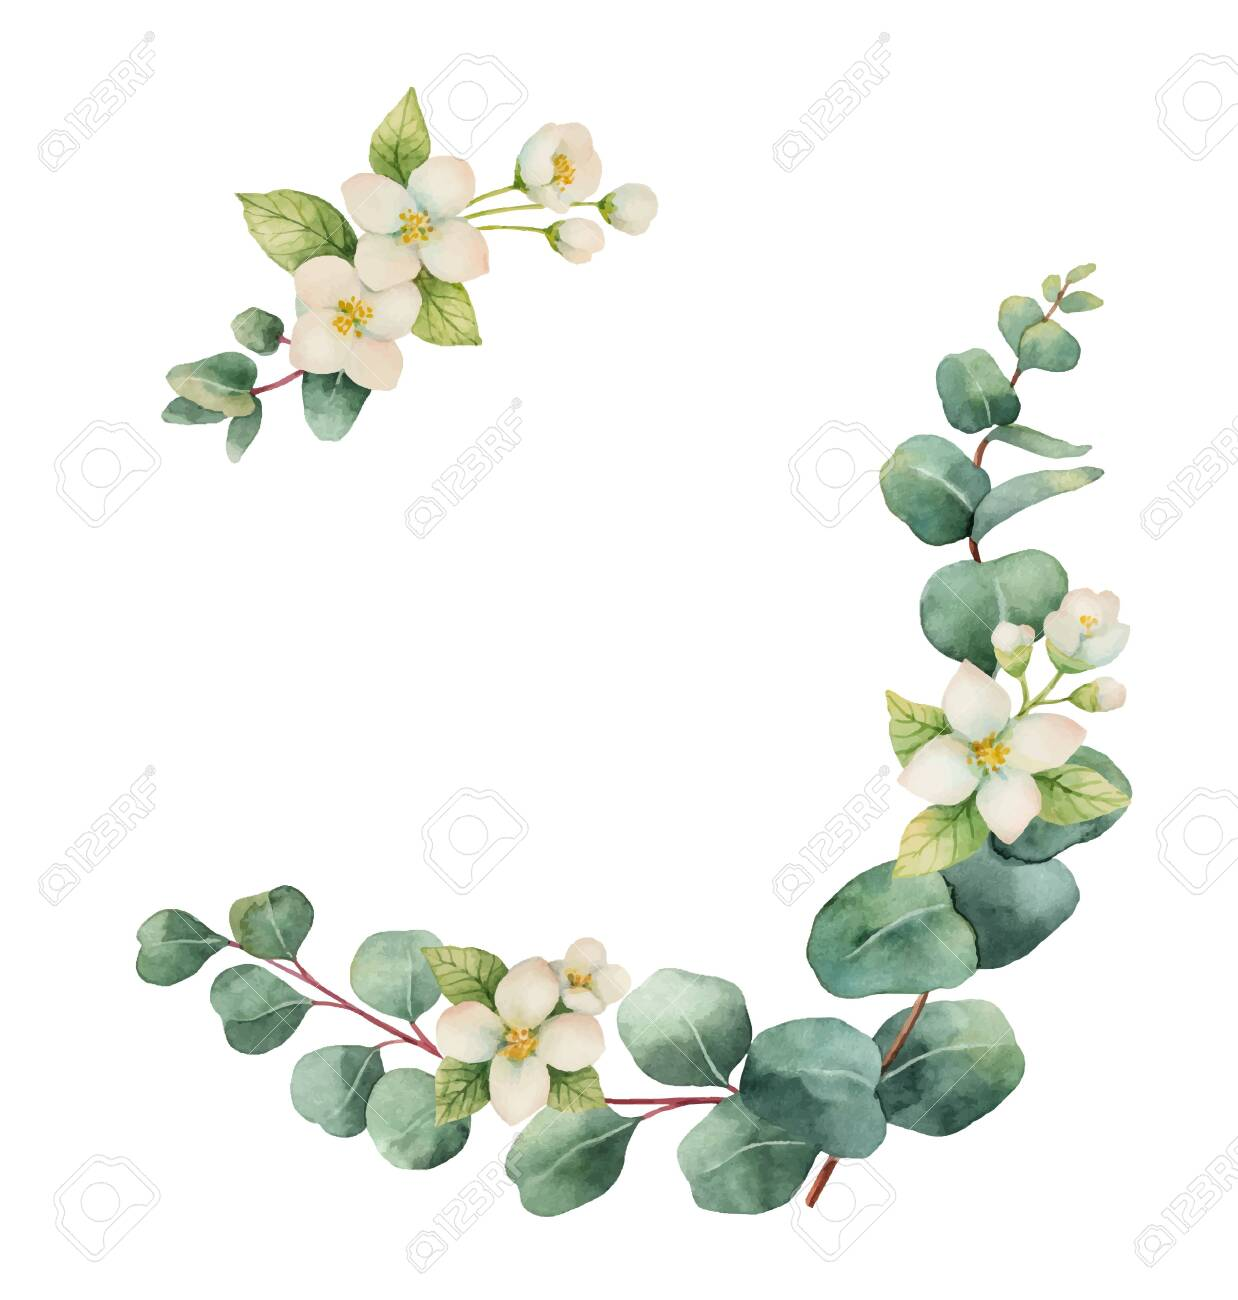 Watercolor vector wreath with silver dollar eucalyptus leaves and flowers. illustration for cards, wedding invitation,save the date or greeting design. Summer flowers with space for your text. - 123633249